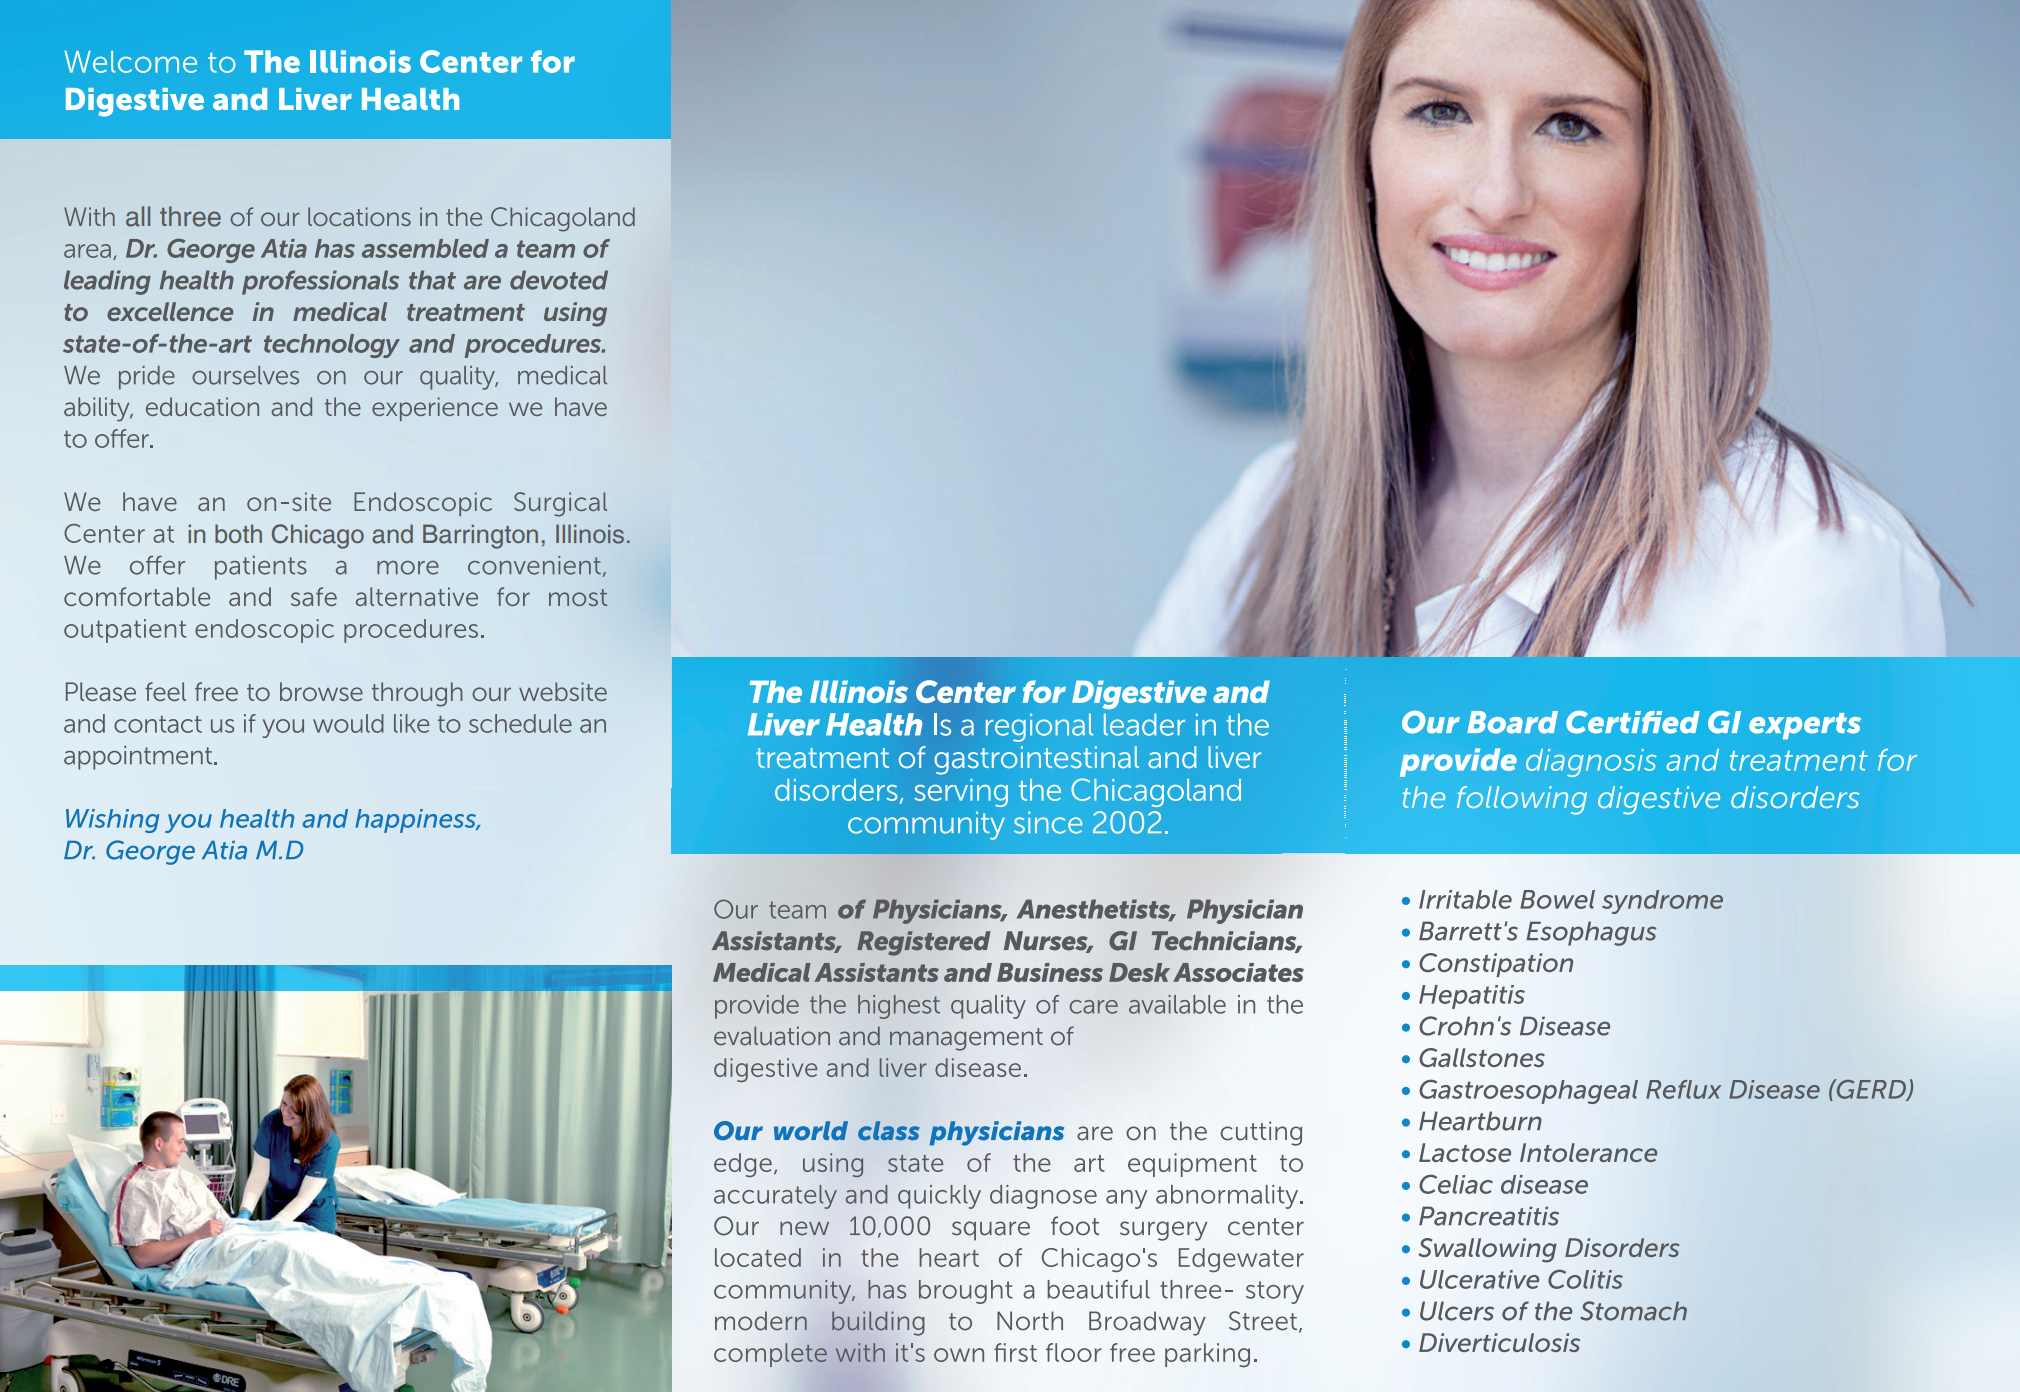 DOWNLOAD OUR BROCHURE - Find out what our center has to offer, call us today for a consultation.